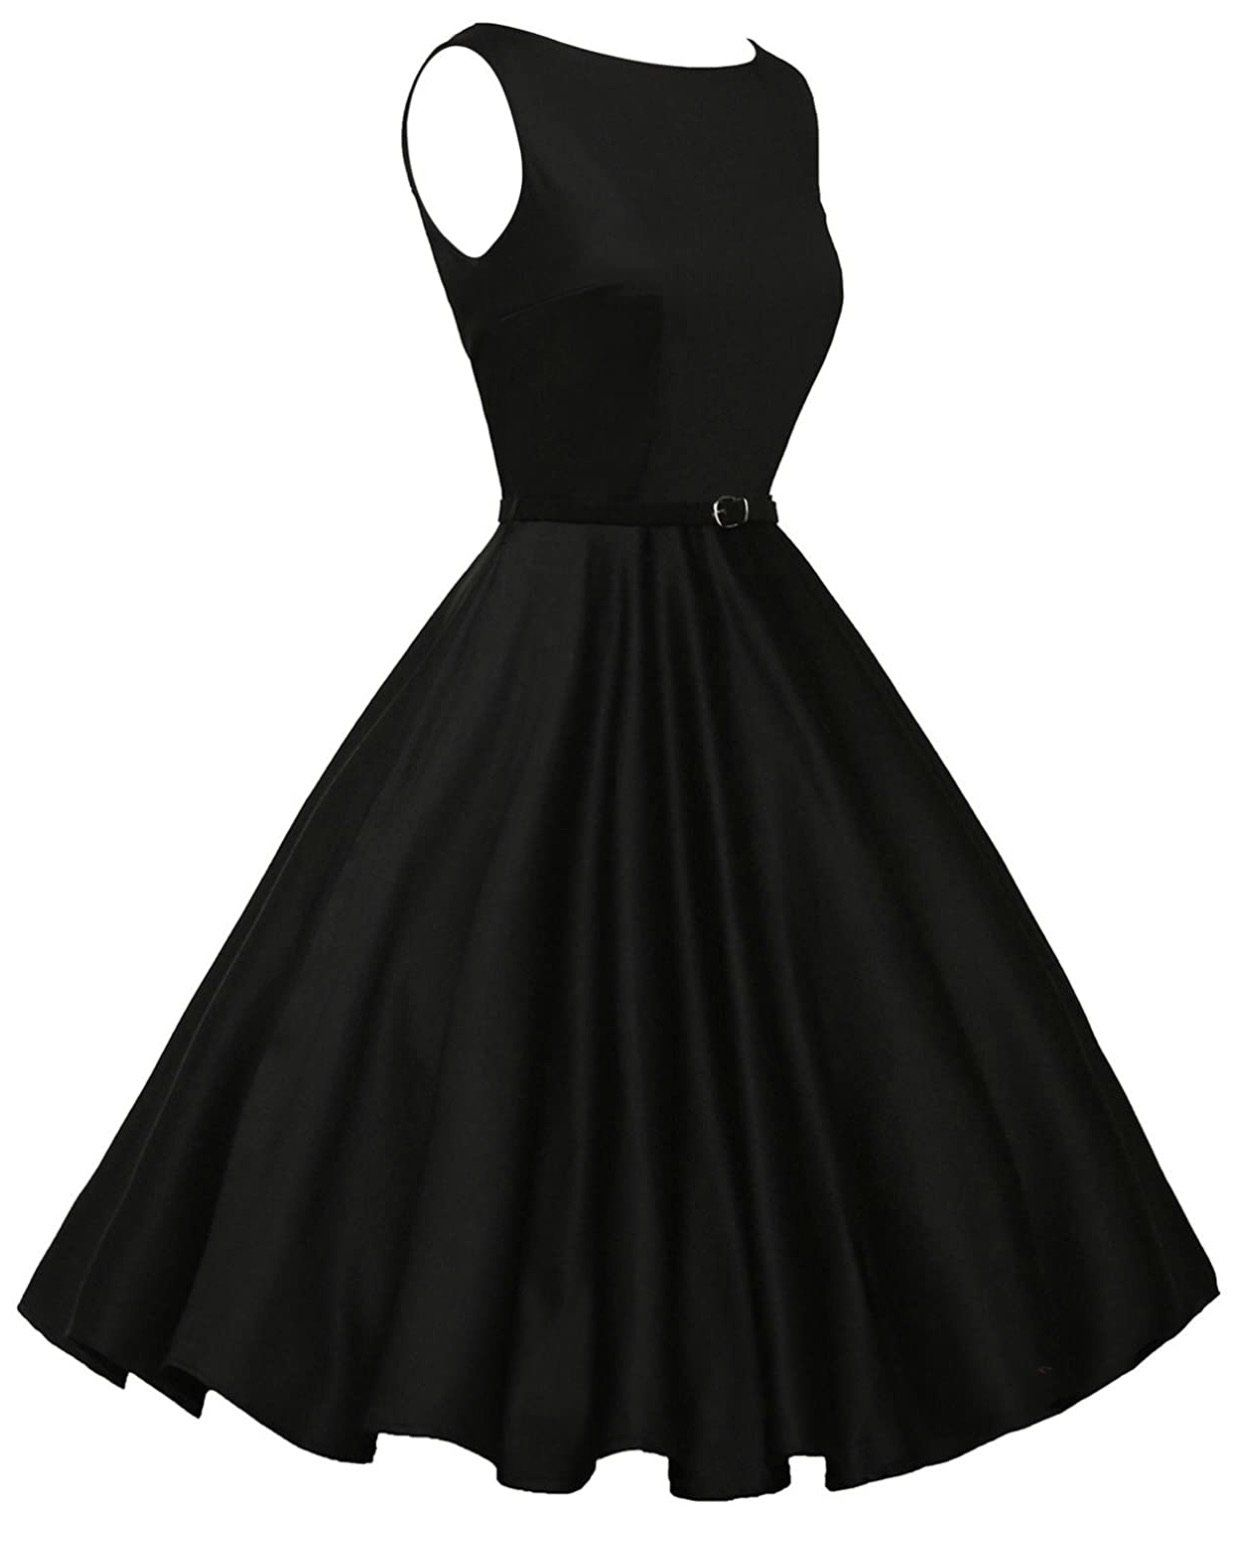 Vintage Inspired Inspired Dress with Belt, Sizes XSmall – 22W (Black) – US 20W – saved